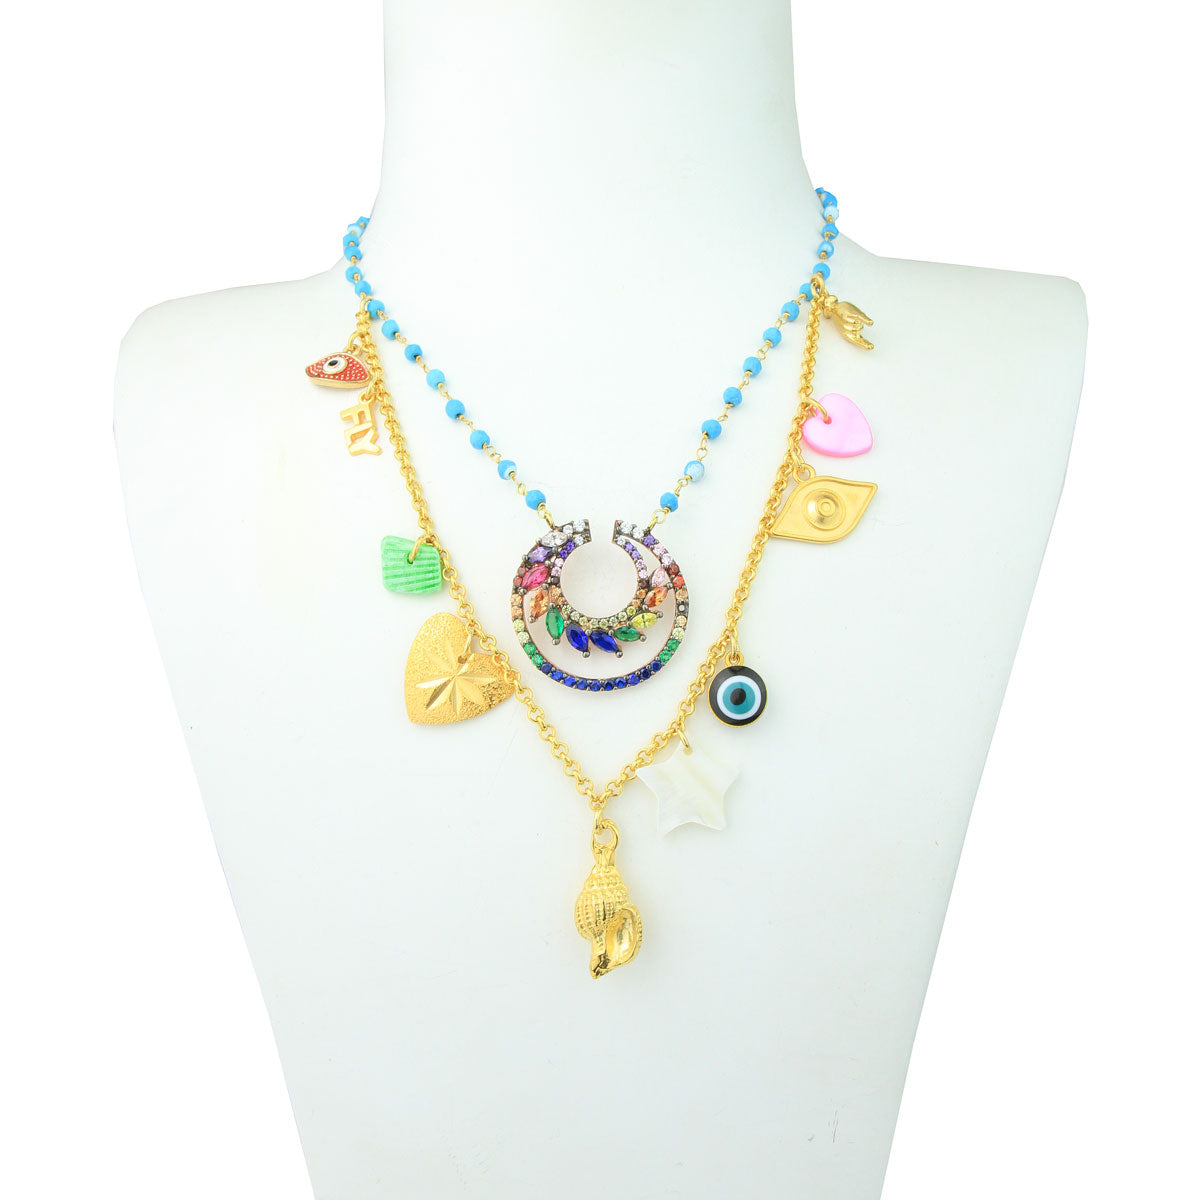 5db7f643bed gold plated sterling silver short charm necklace with turquoise and shells